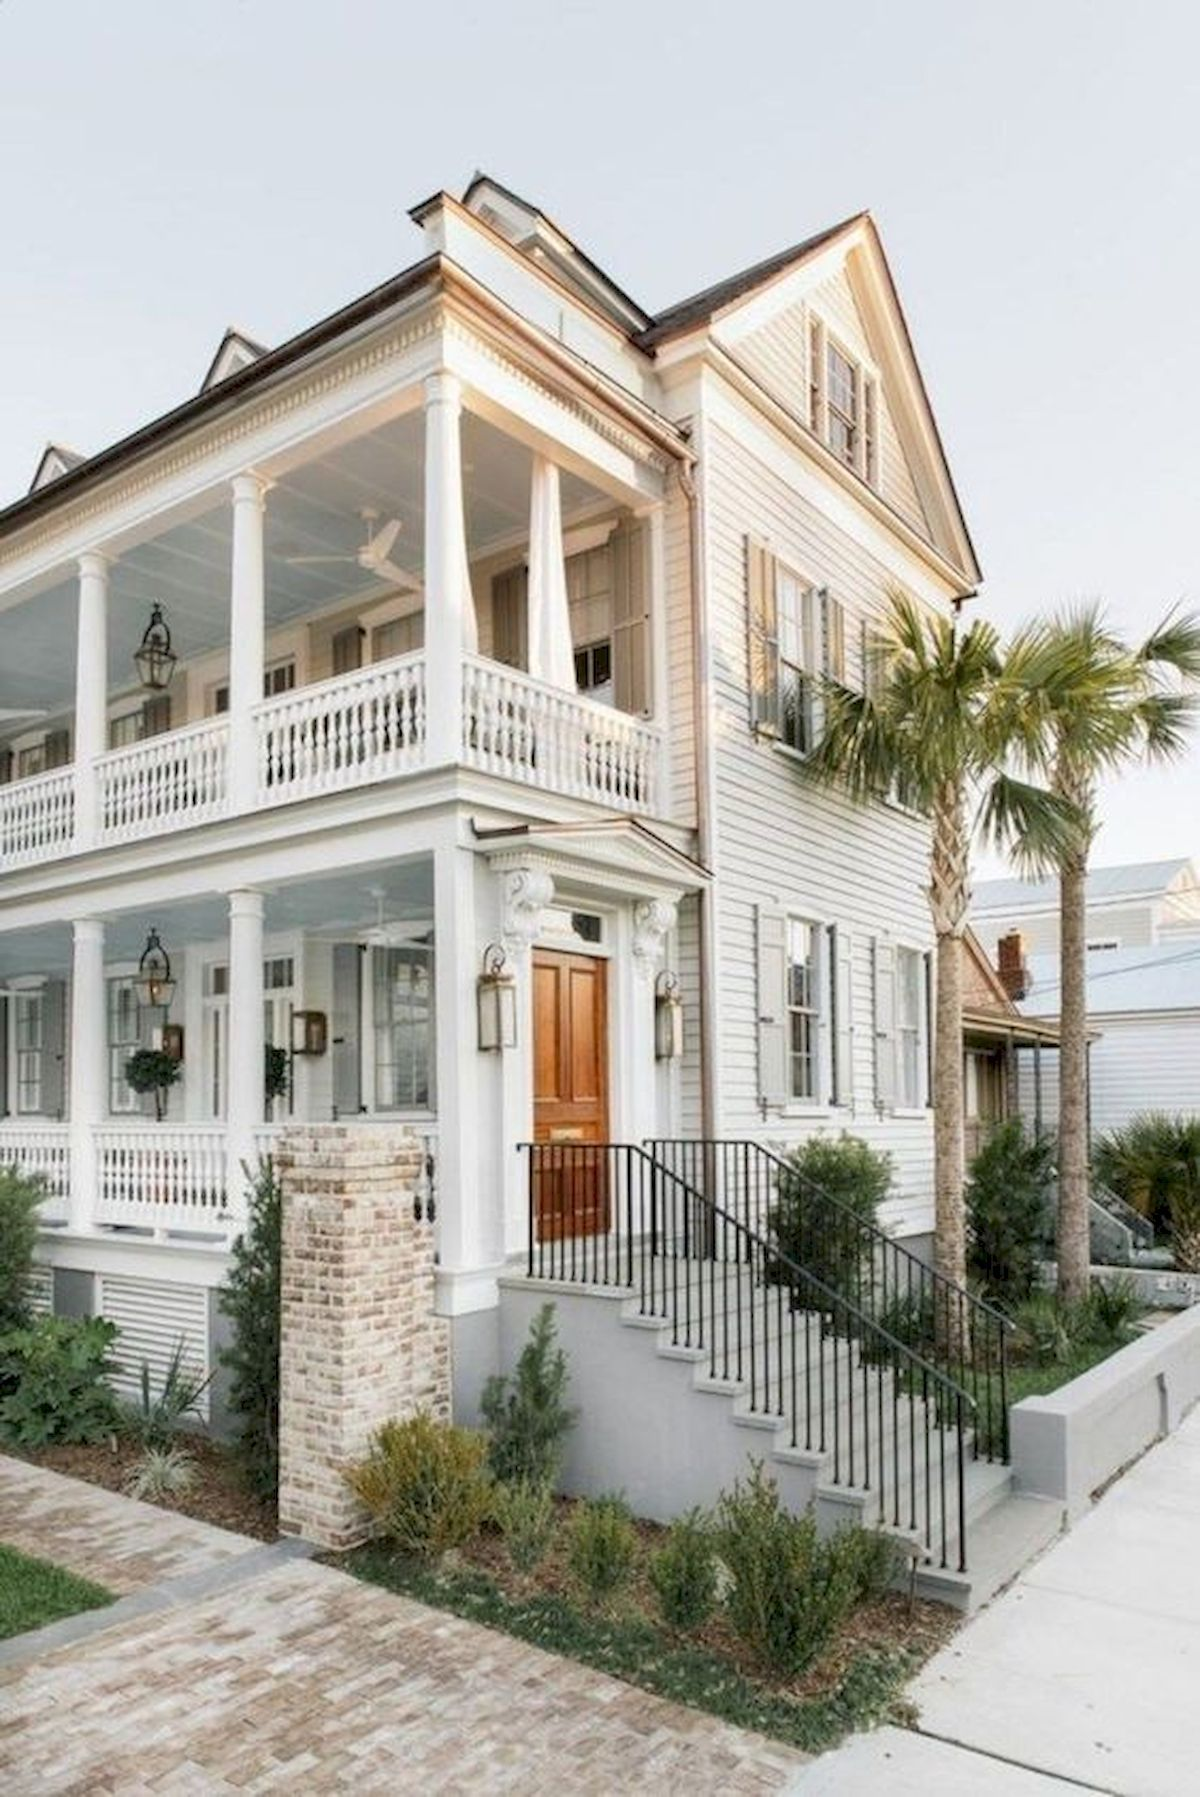 30 Awesome Beach House Design Ideas With More Pleasure In 2020 Beach House Interior Luxury Beach House Beach House Furniture